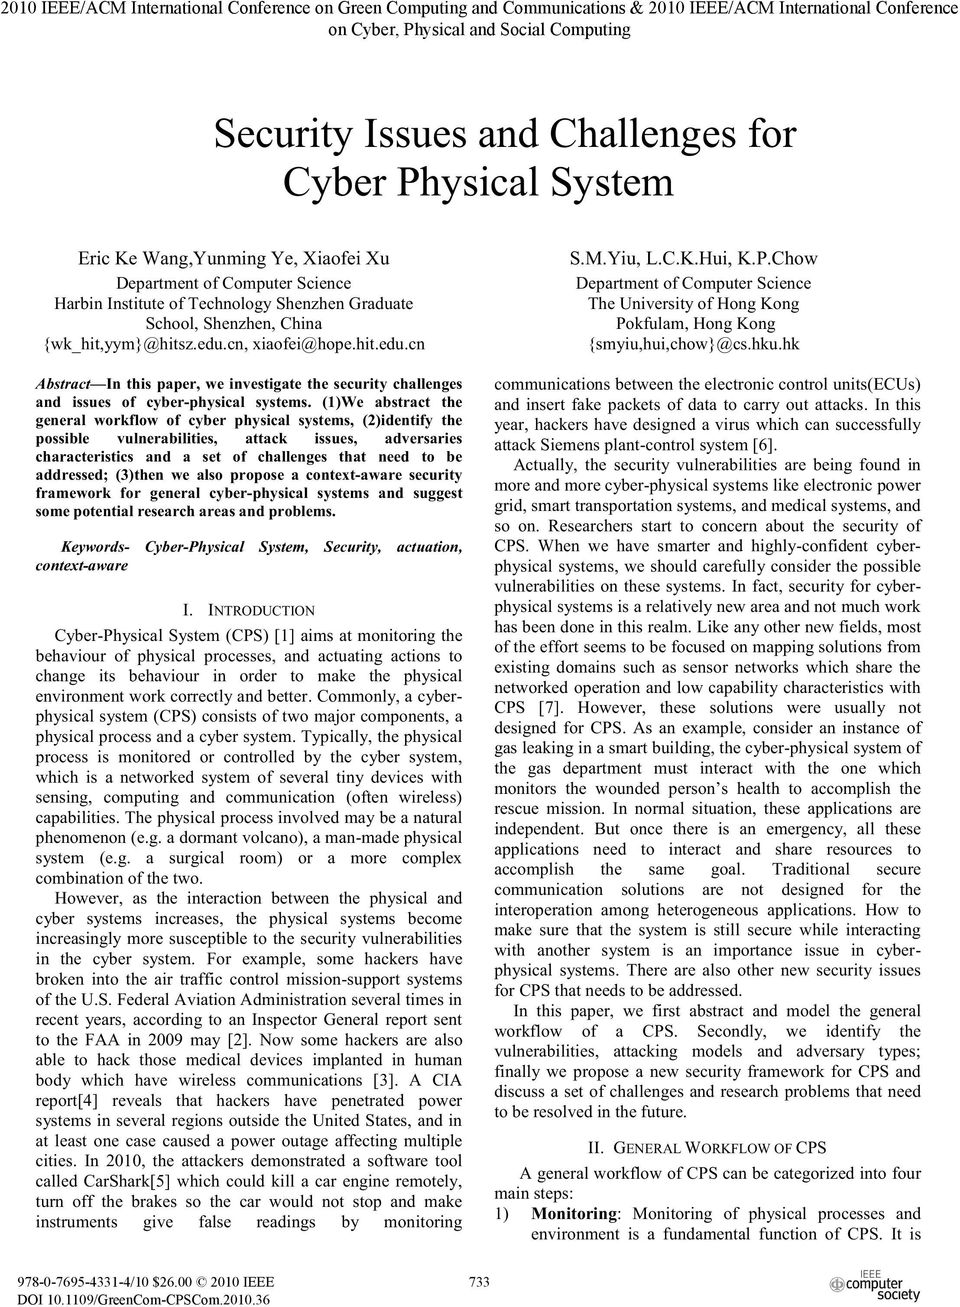 cn, xiaofei@hope.hit.edu.cn Abstract In this paper, we investigate the security challenges and issues of cyber-physical systems.